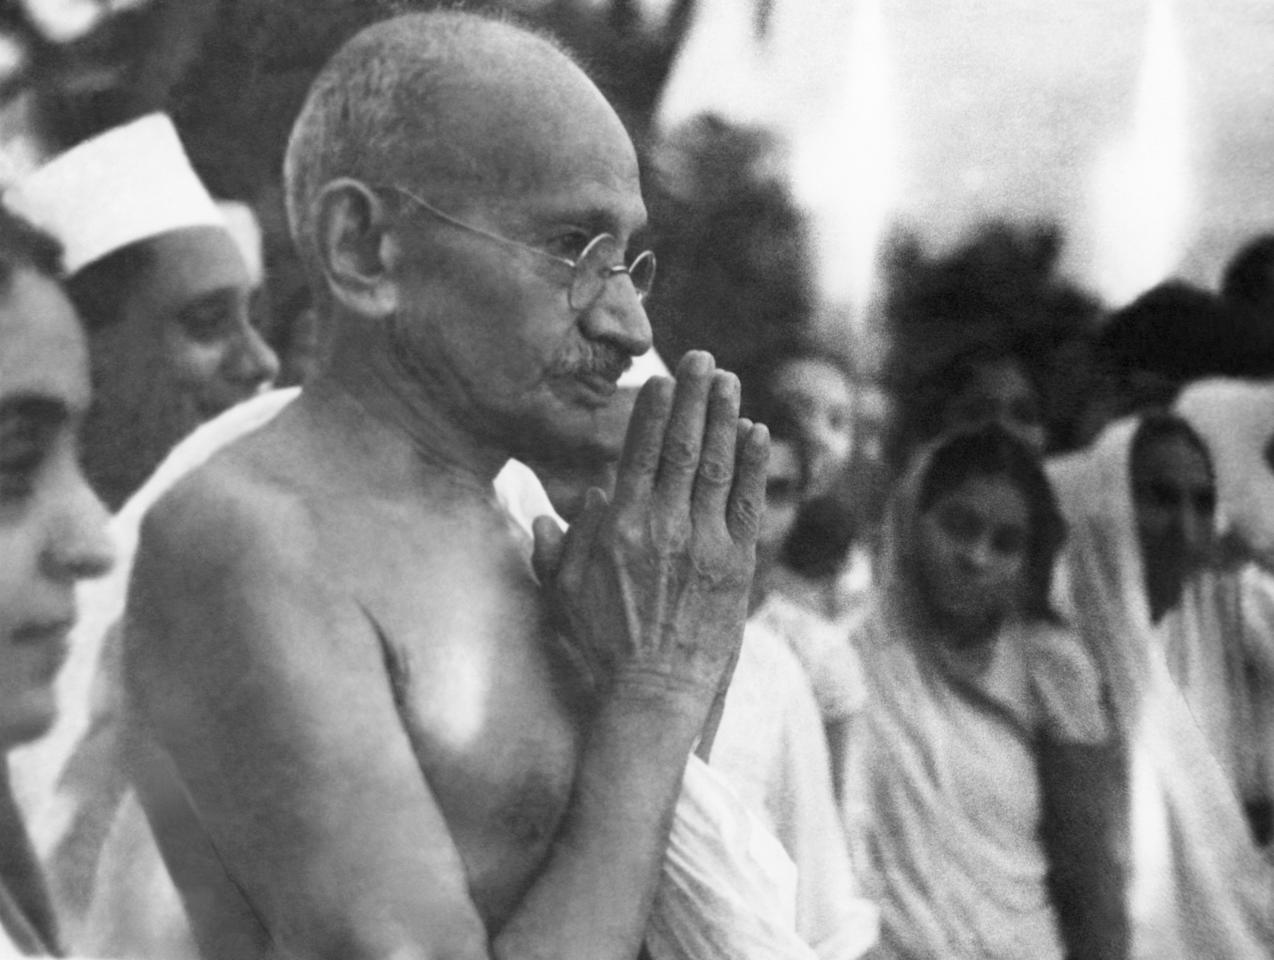 The peasants in Bihar's Champaran were in distress. The burden of cultivating indigo on a certain portion of land and selling them at the rates fixed by the planters had worsened their state. Upon hearing about Gandhi's heroics in South Africa, many farmers in the district urged him to take up their cause. Gandhi didn't disappoint them. He set up a detailed inquiry into the suffering of the farmers. This infuriated the district officials who asked him to leave Champaran immediately. Gandhi was unwilling to leave and risked imprisonment. Upon his arrest, mass protests broke out in the district. Gandhi's defiance in an uncanny, peaceful manner confounded the officials and he was let go. The struggle continued. Eventually, the British relented and the farmers were given more control over their lands.